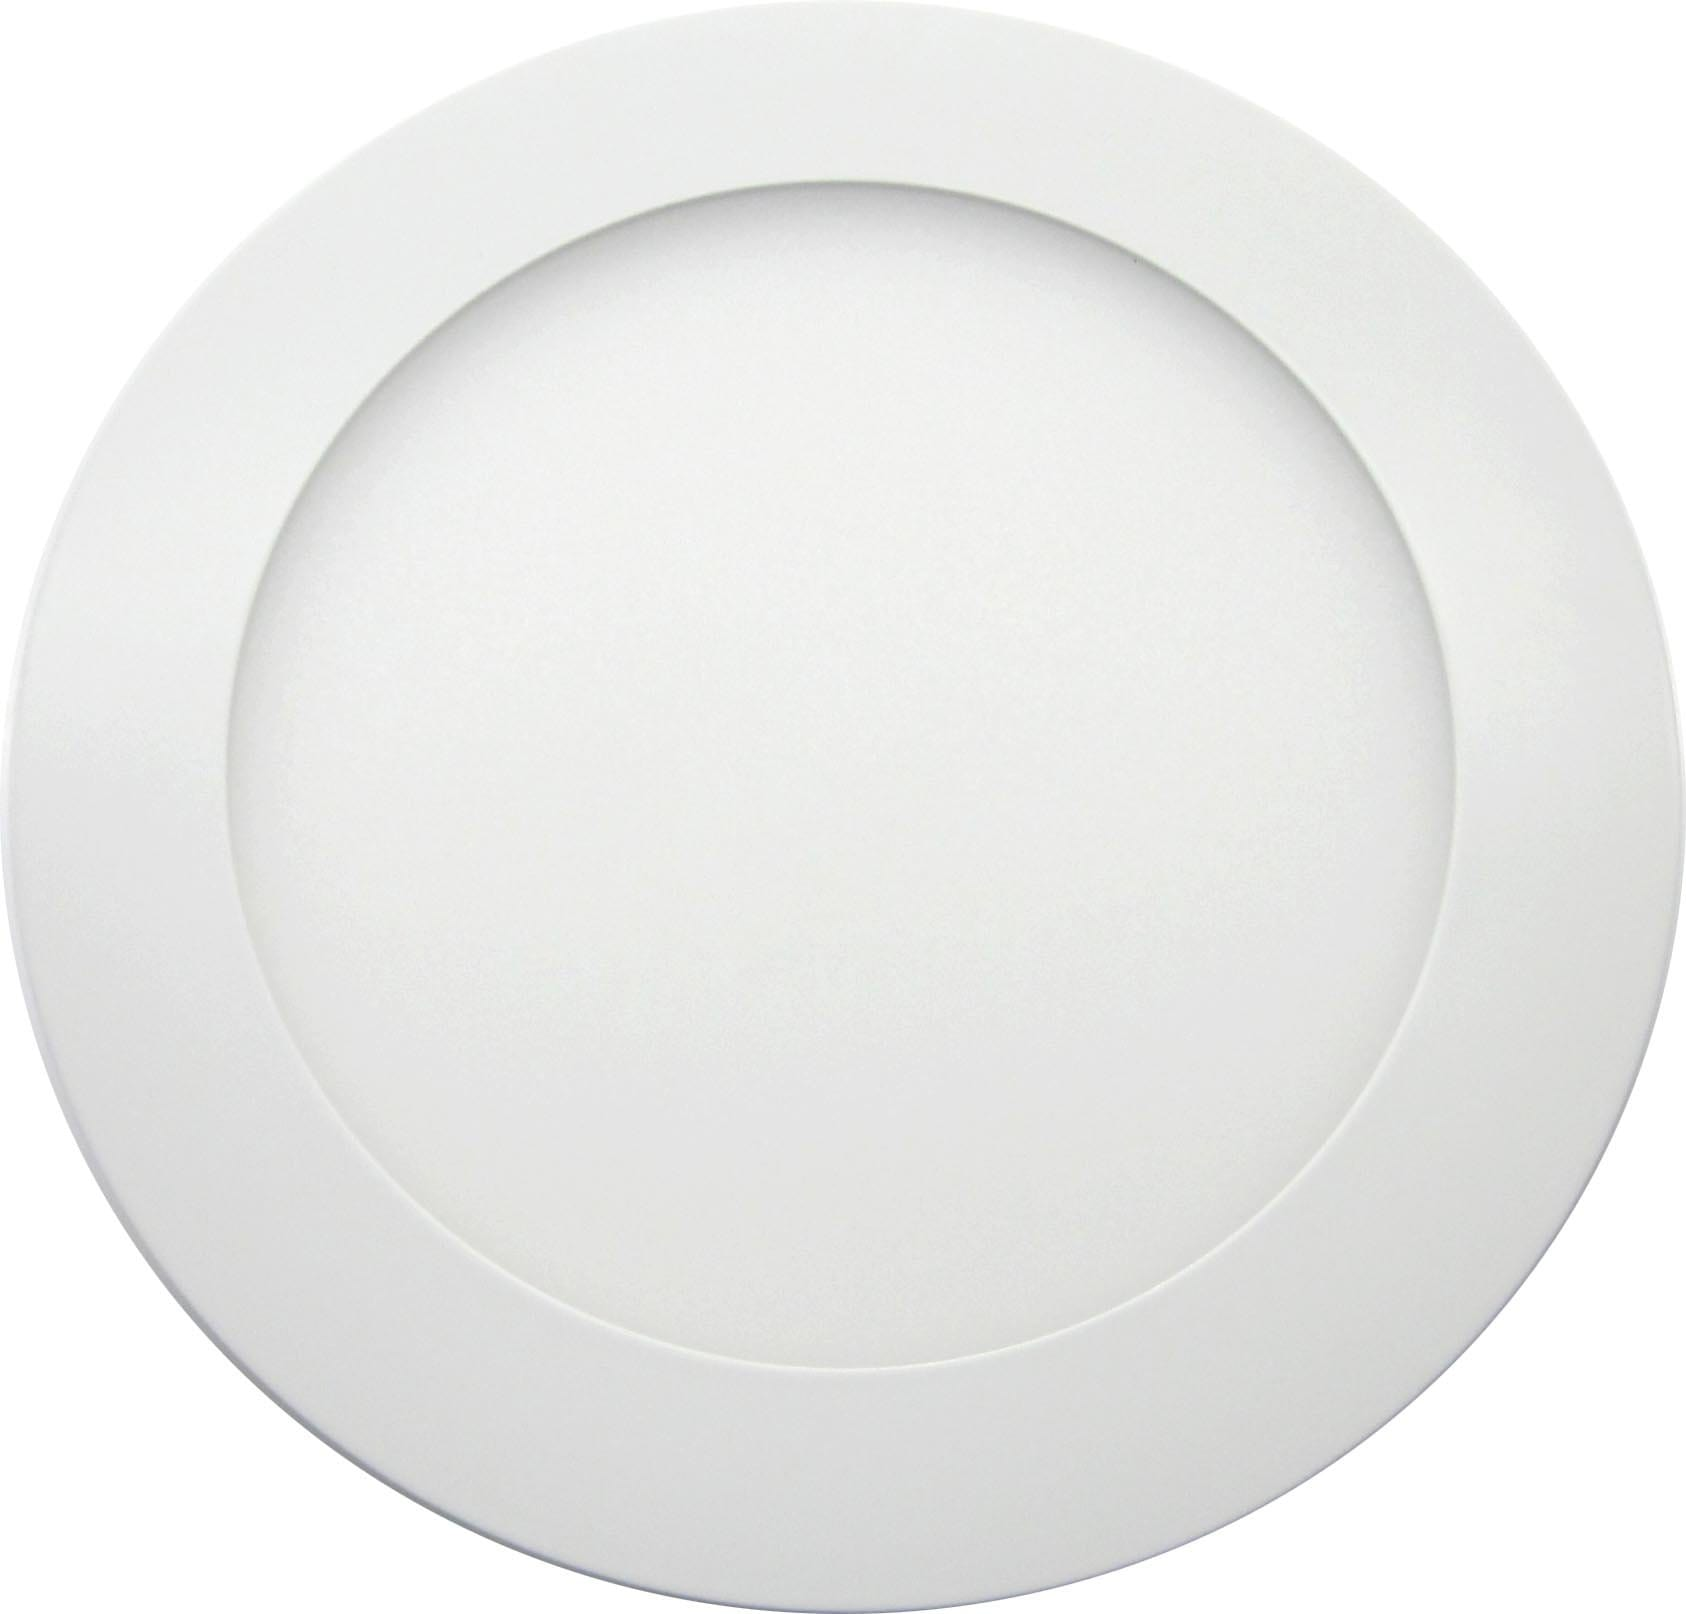 Bell 12W Aria Round LED Panel Cool White - BL09729